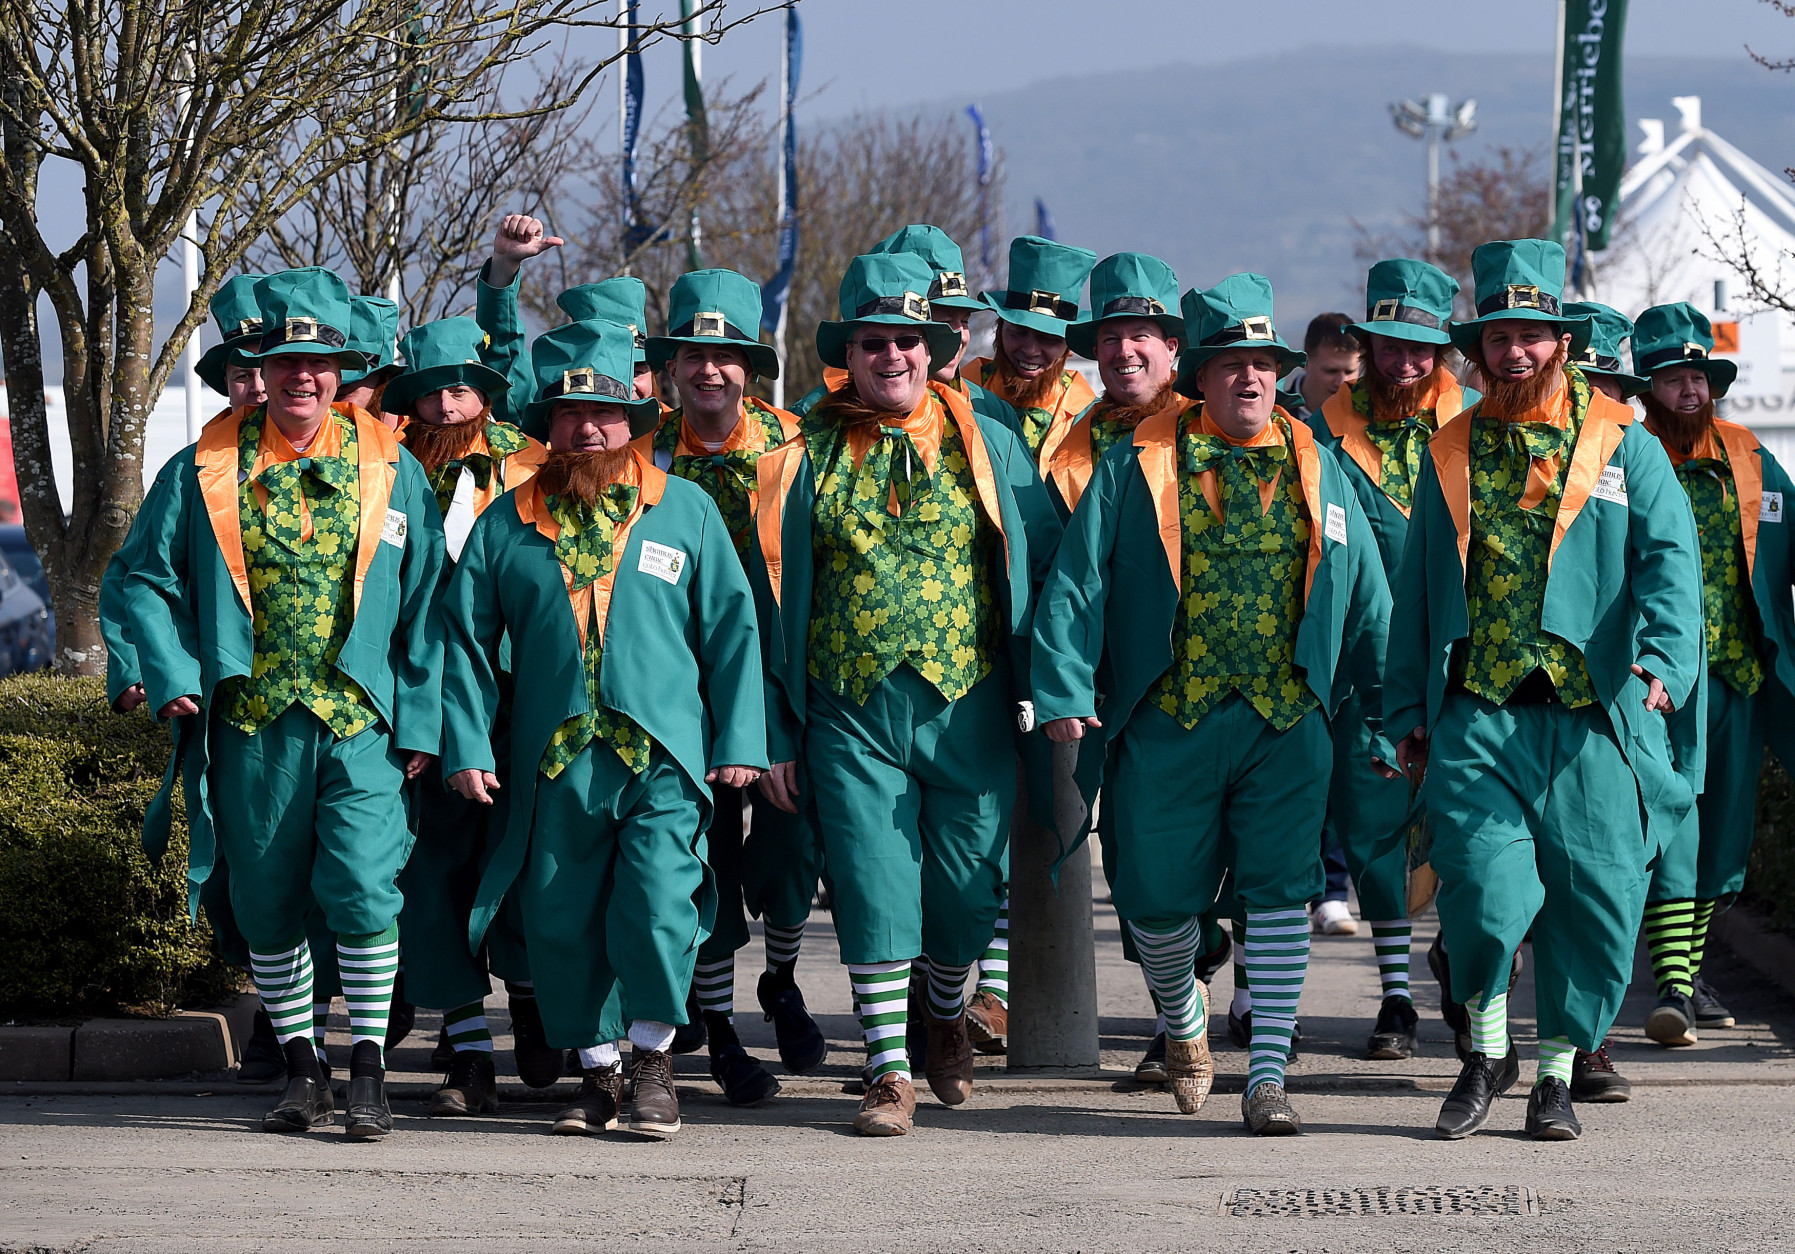 Racegoers dressed in fancy dress arrive  at Cheltenham Racecourse in Cheltenham England on St Patrick's Thursday March 17, 2016.  Cheltenham always attracts a large number Irish people to the Cheltenham Horse Racing Festival.(Joe Giddens/PA via AP) UNITED KINGDOM OUT